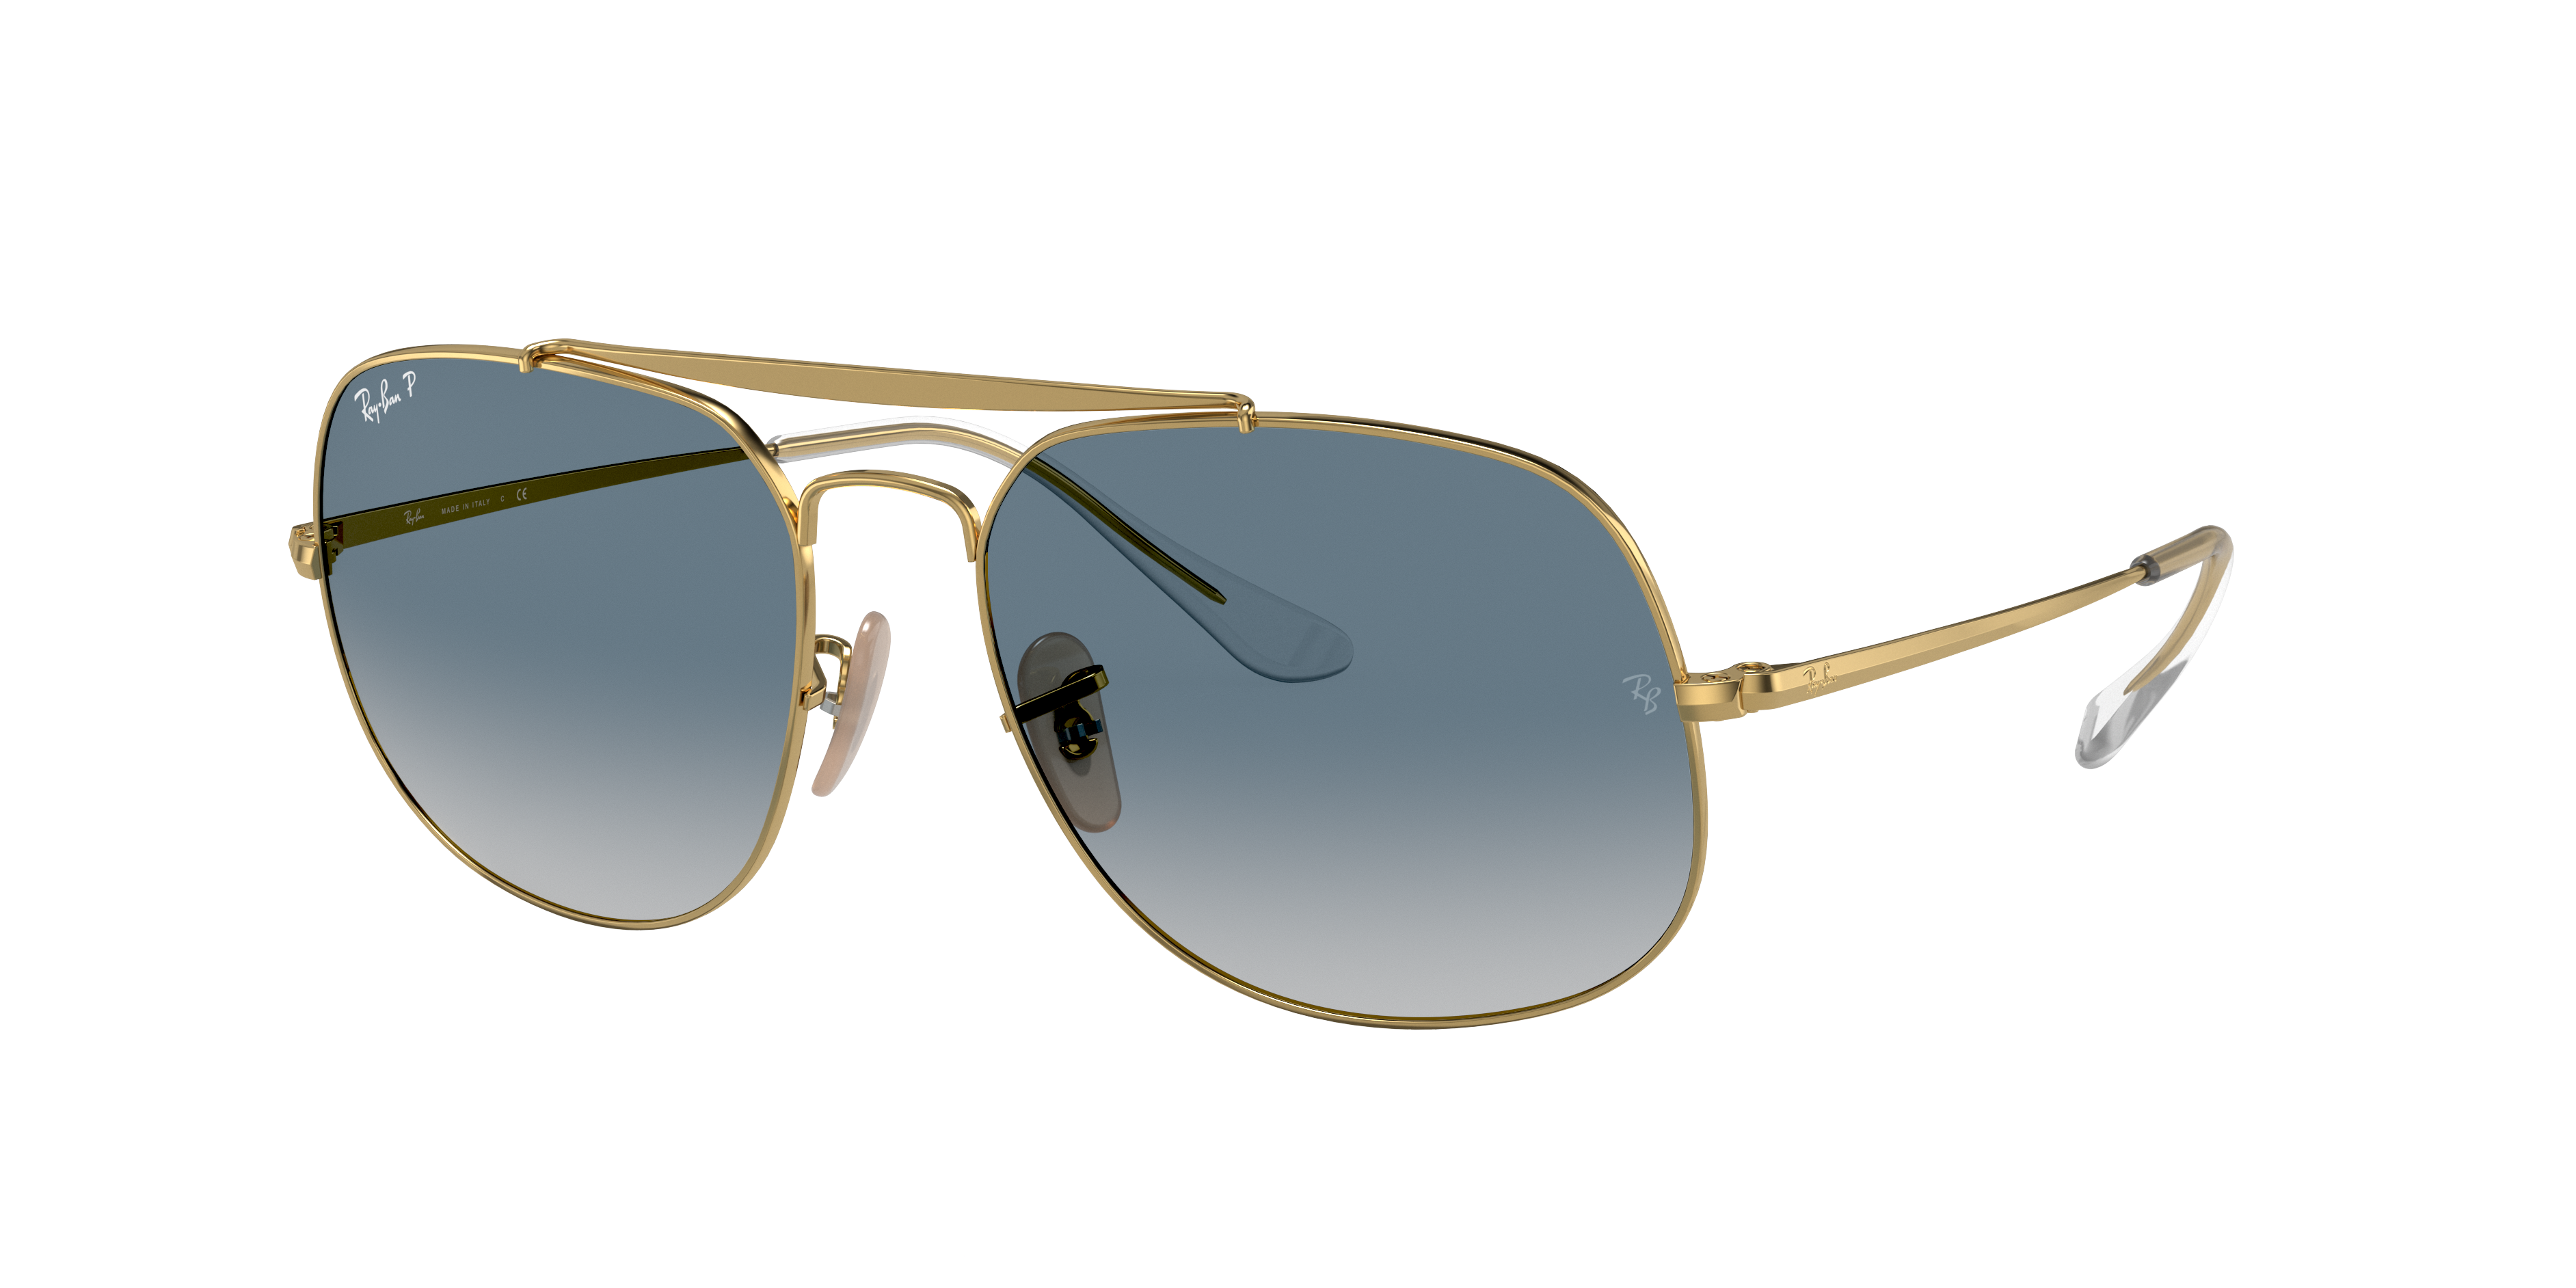 Ray-Ban General Gold, Blue Lenses - RB3561